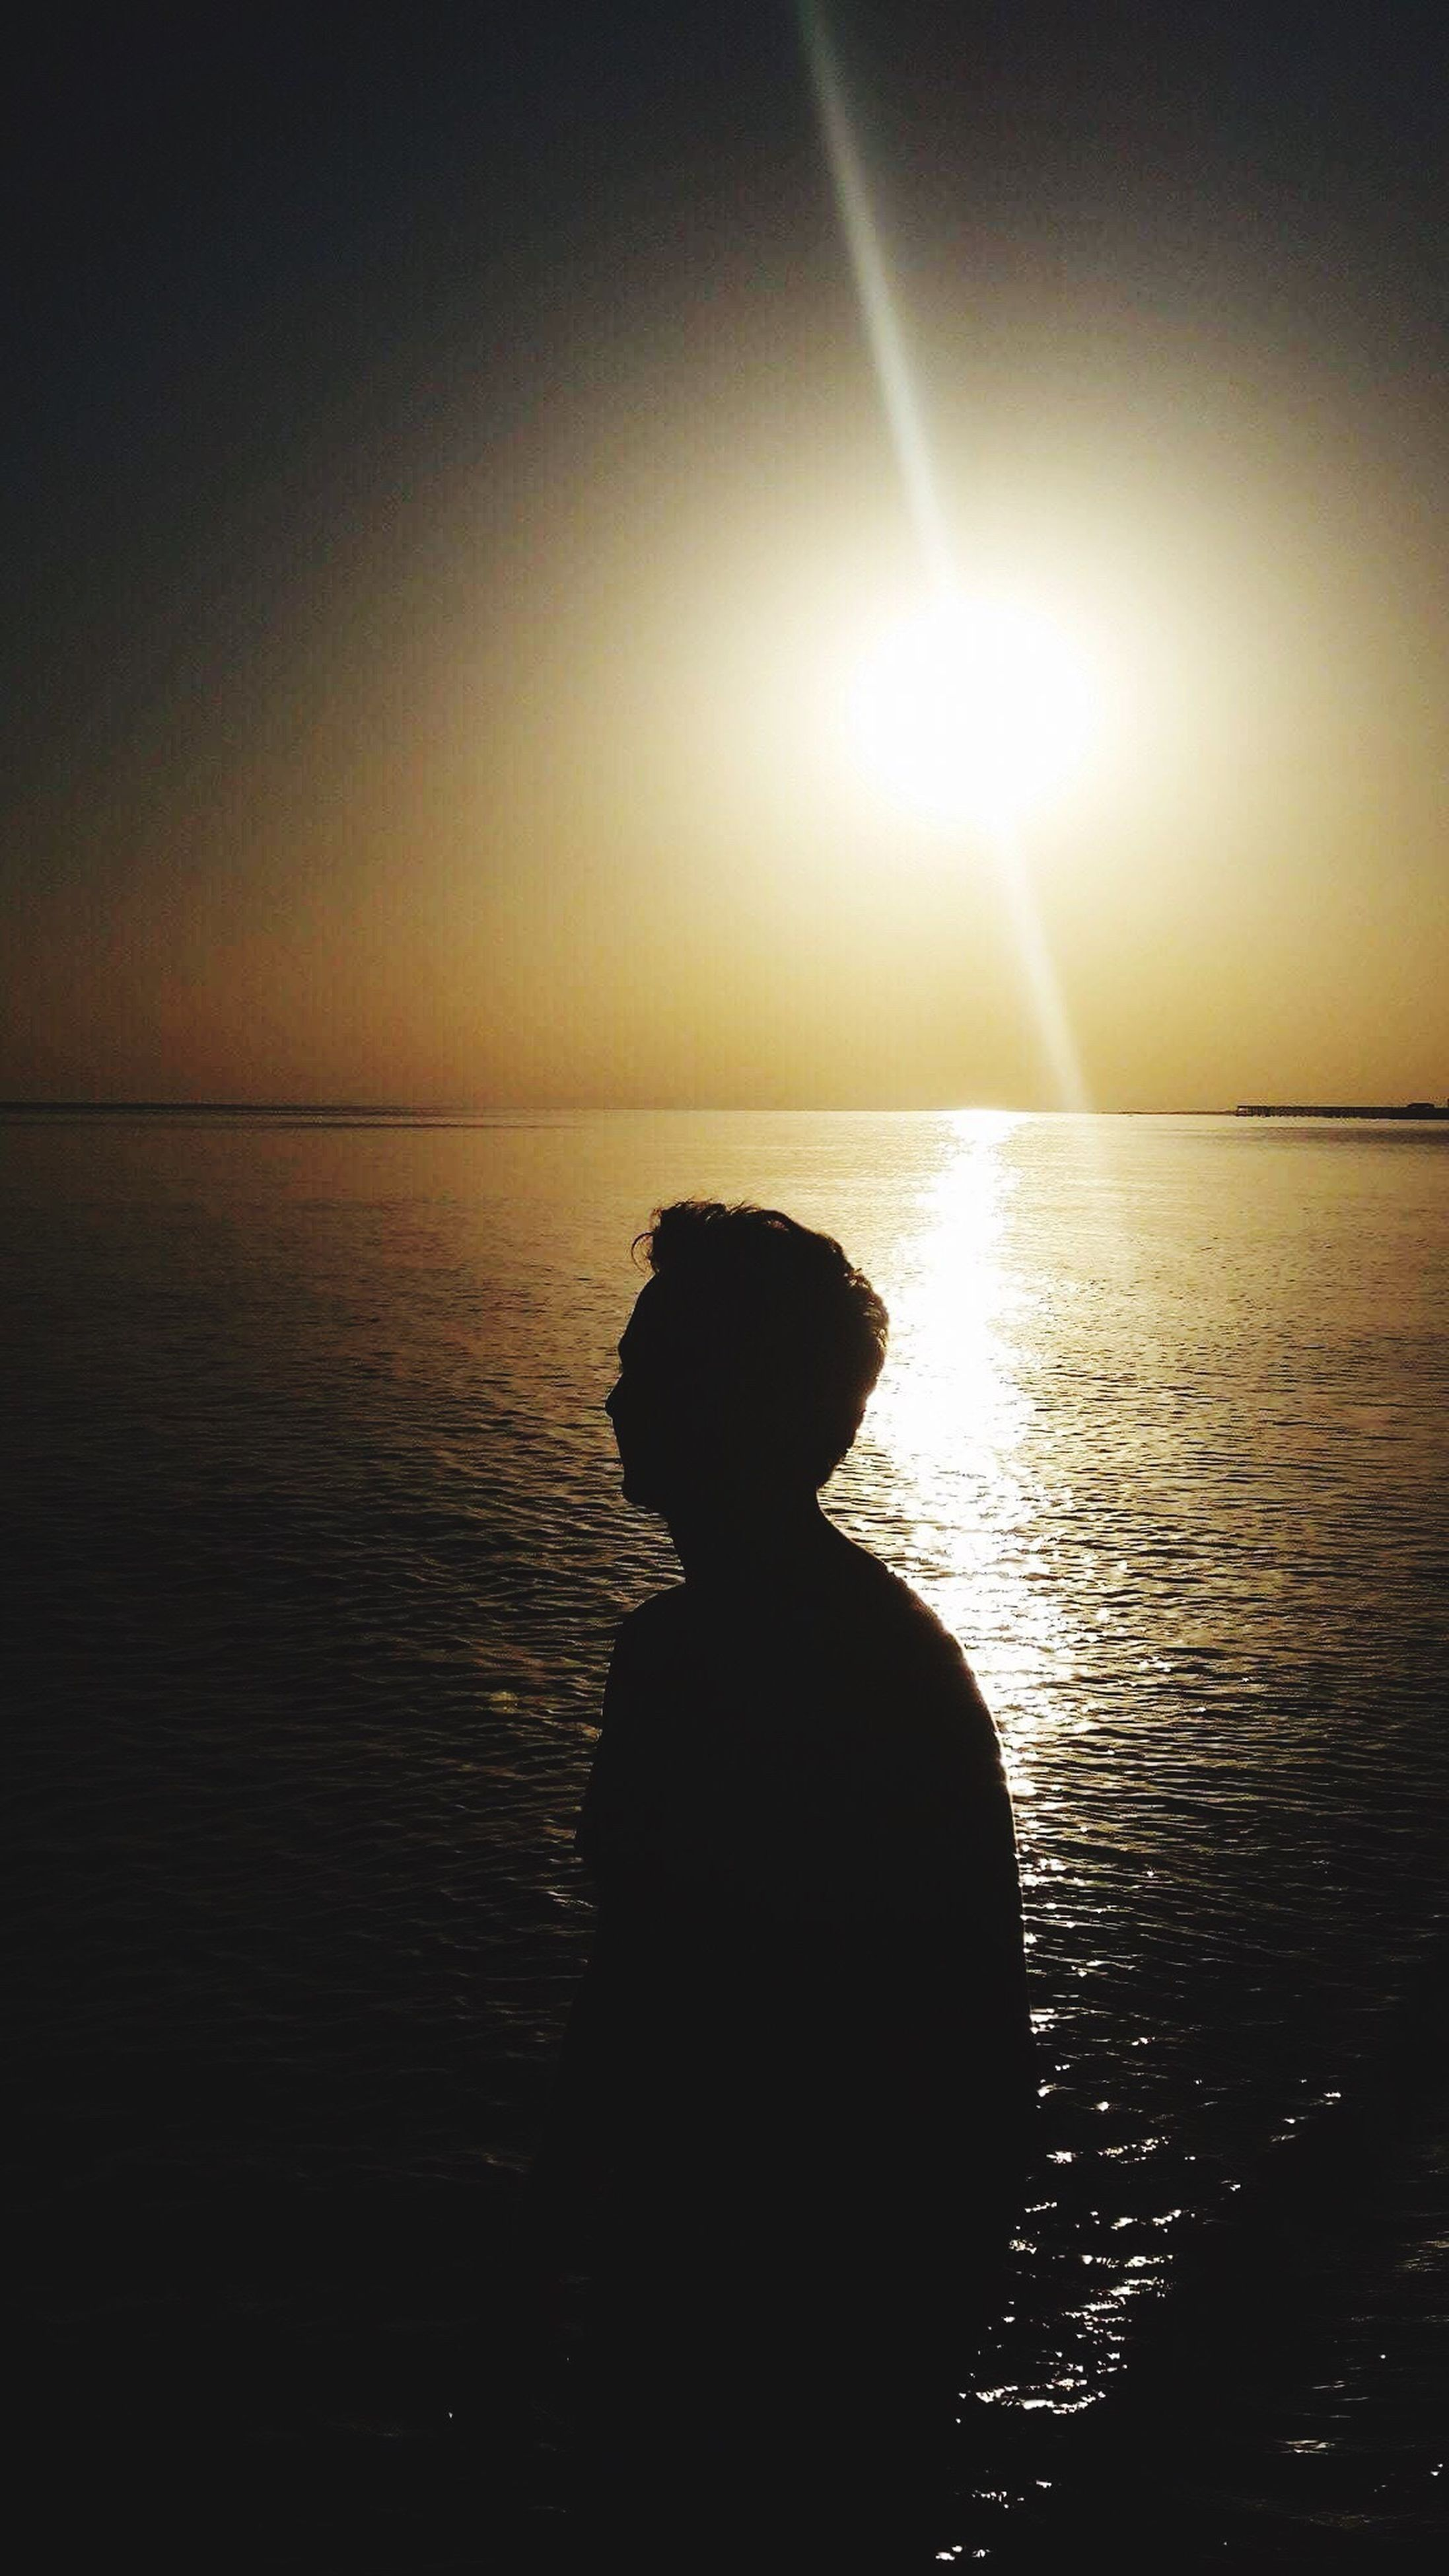 sea, sunset, sun, silhouette, water, horizon over water, nature, sunbeam, scenics, one person, sunlight, tranquility, beauty in nature, tranquil scene, real people, sitting, sky, outdoors, clear sky, people